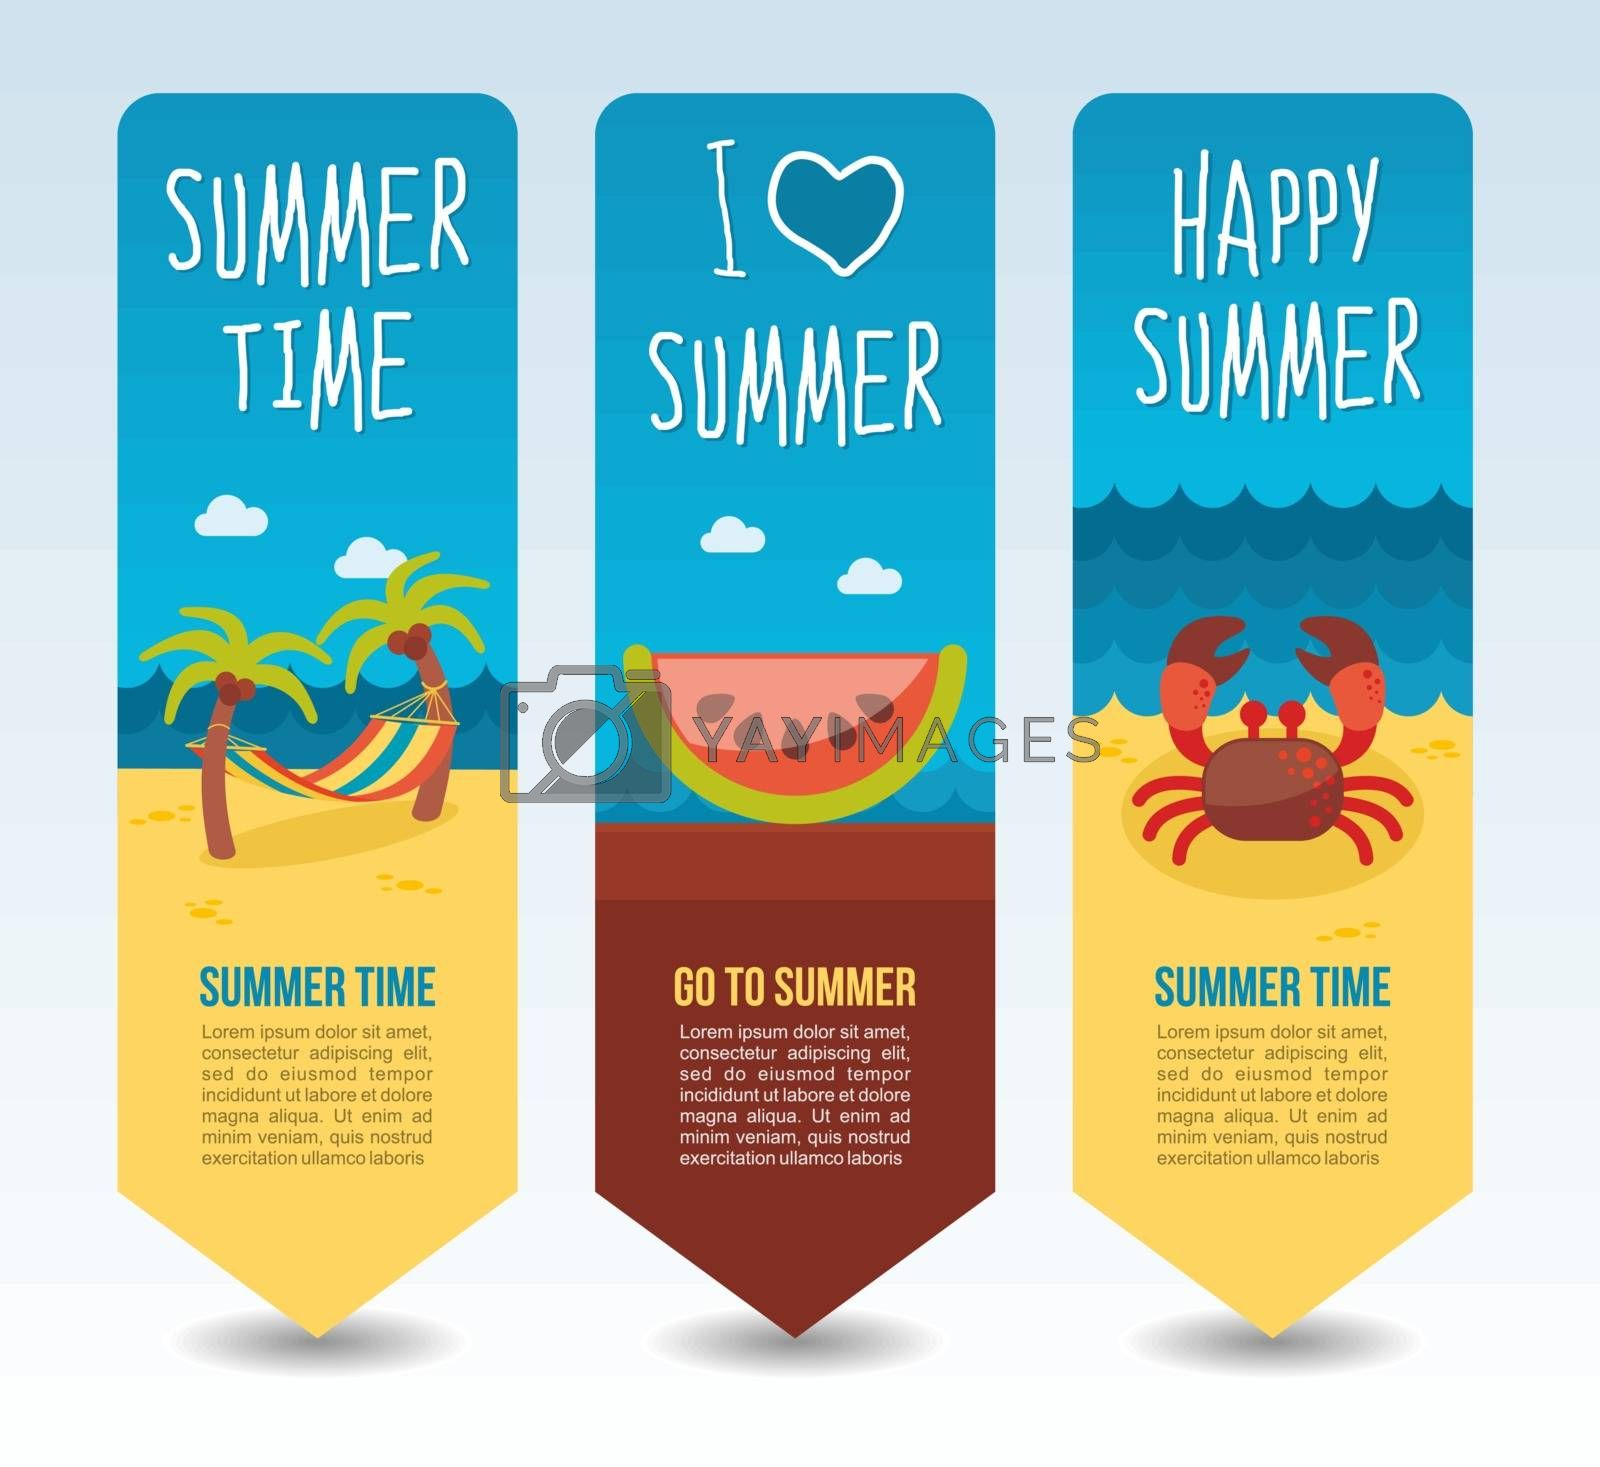 Beach tropical hammock palm tree, slice watermelon and crab. Summer Travel and vacation vector banners. Summertime. Holiday